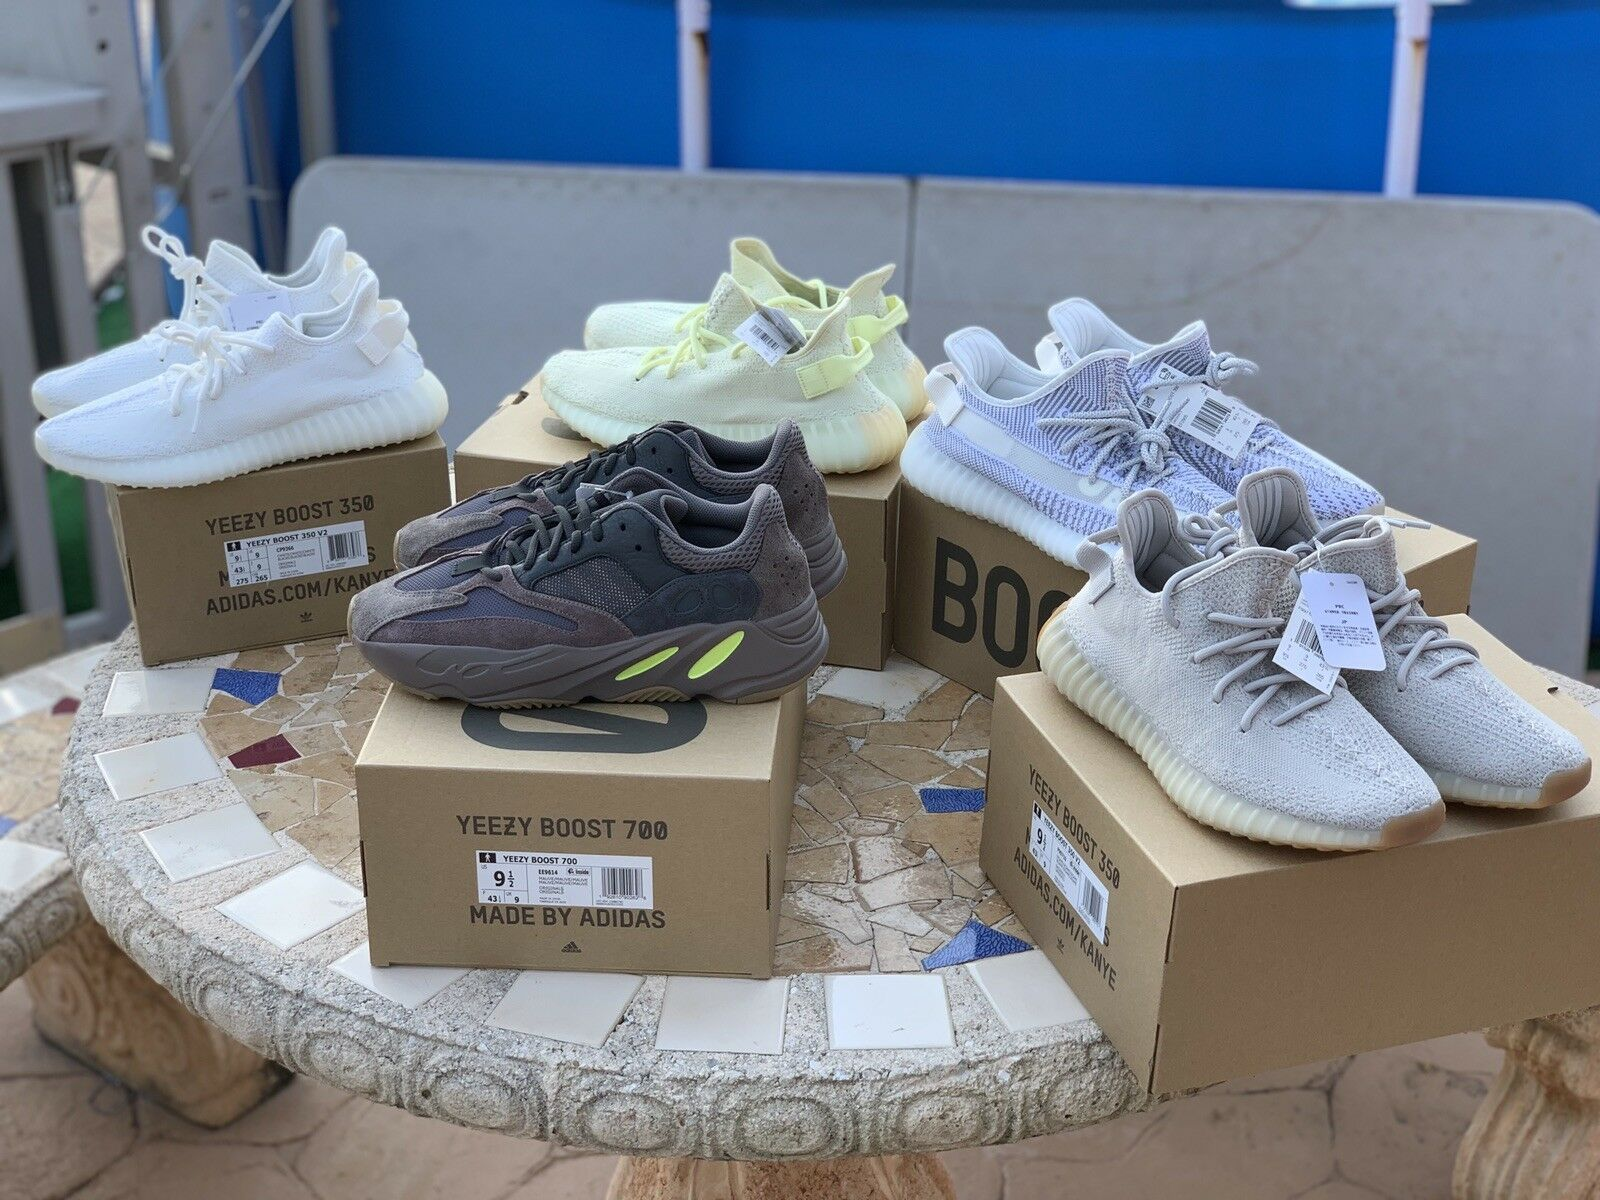 Lot Of 5 Pairs Of Adidas Yeezy Size 9.5